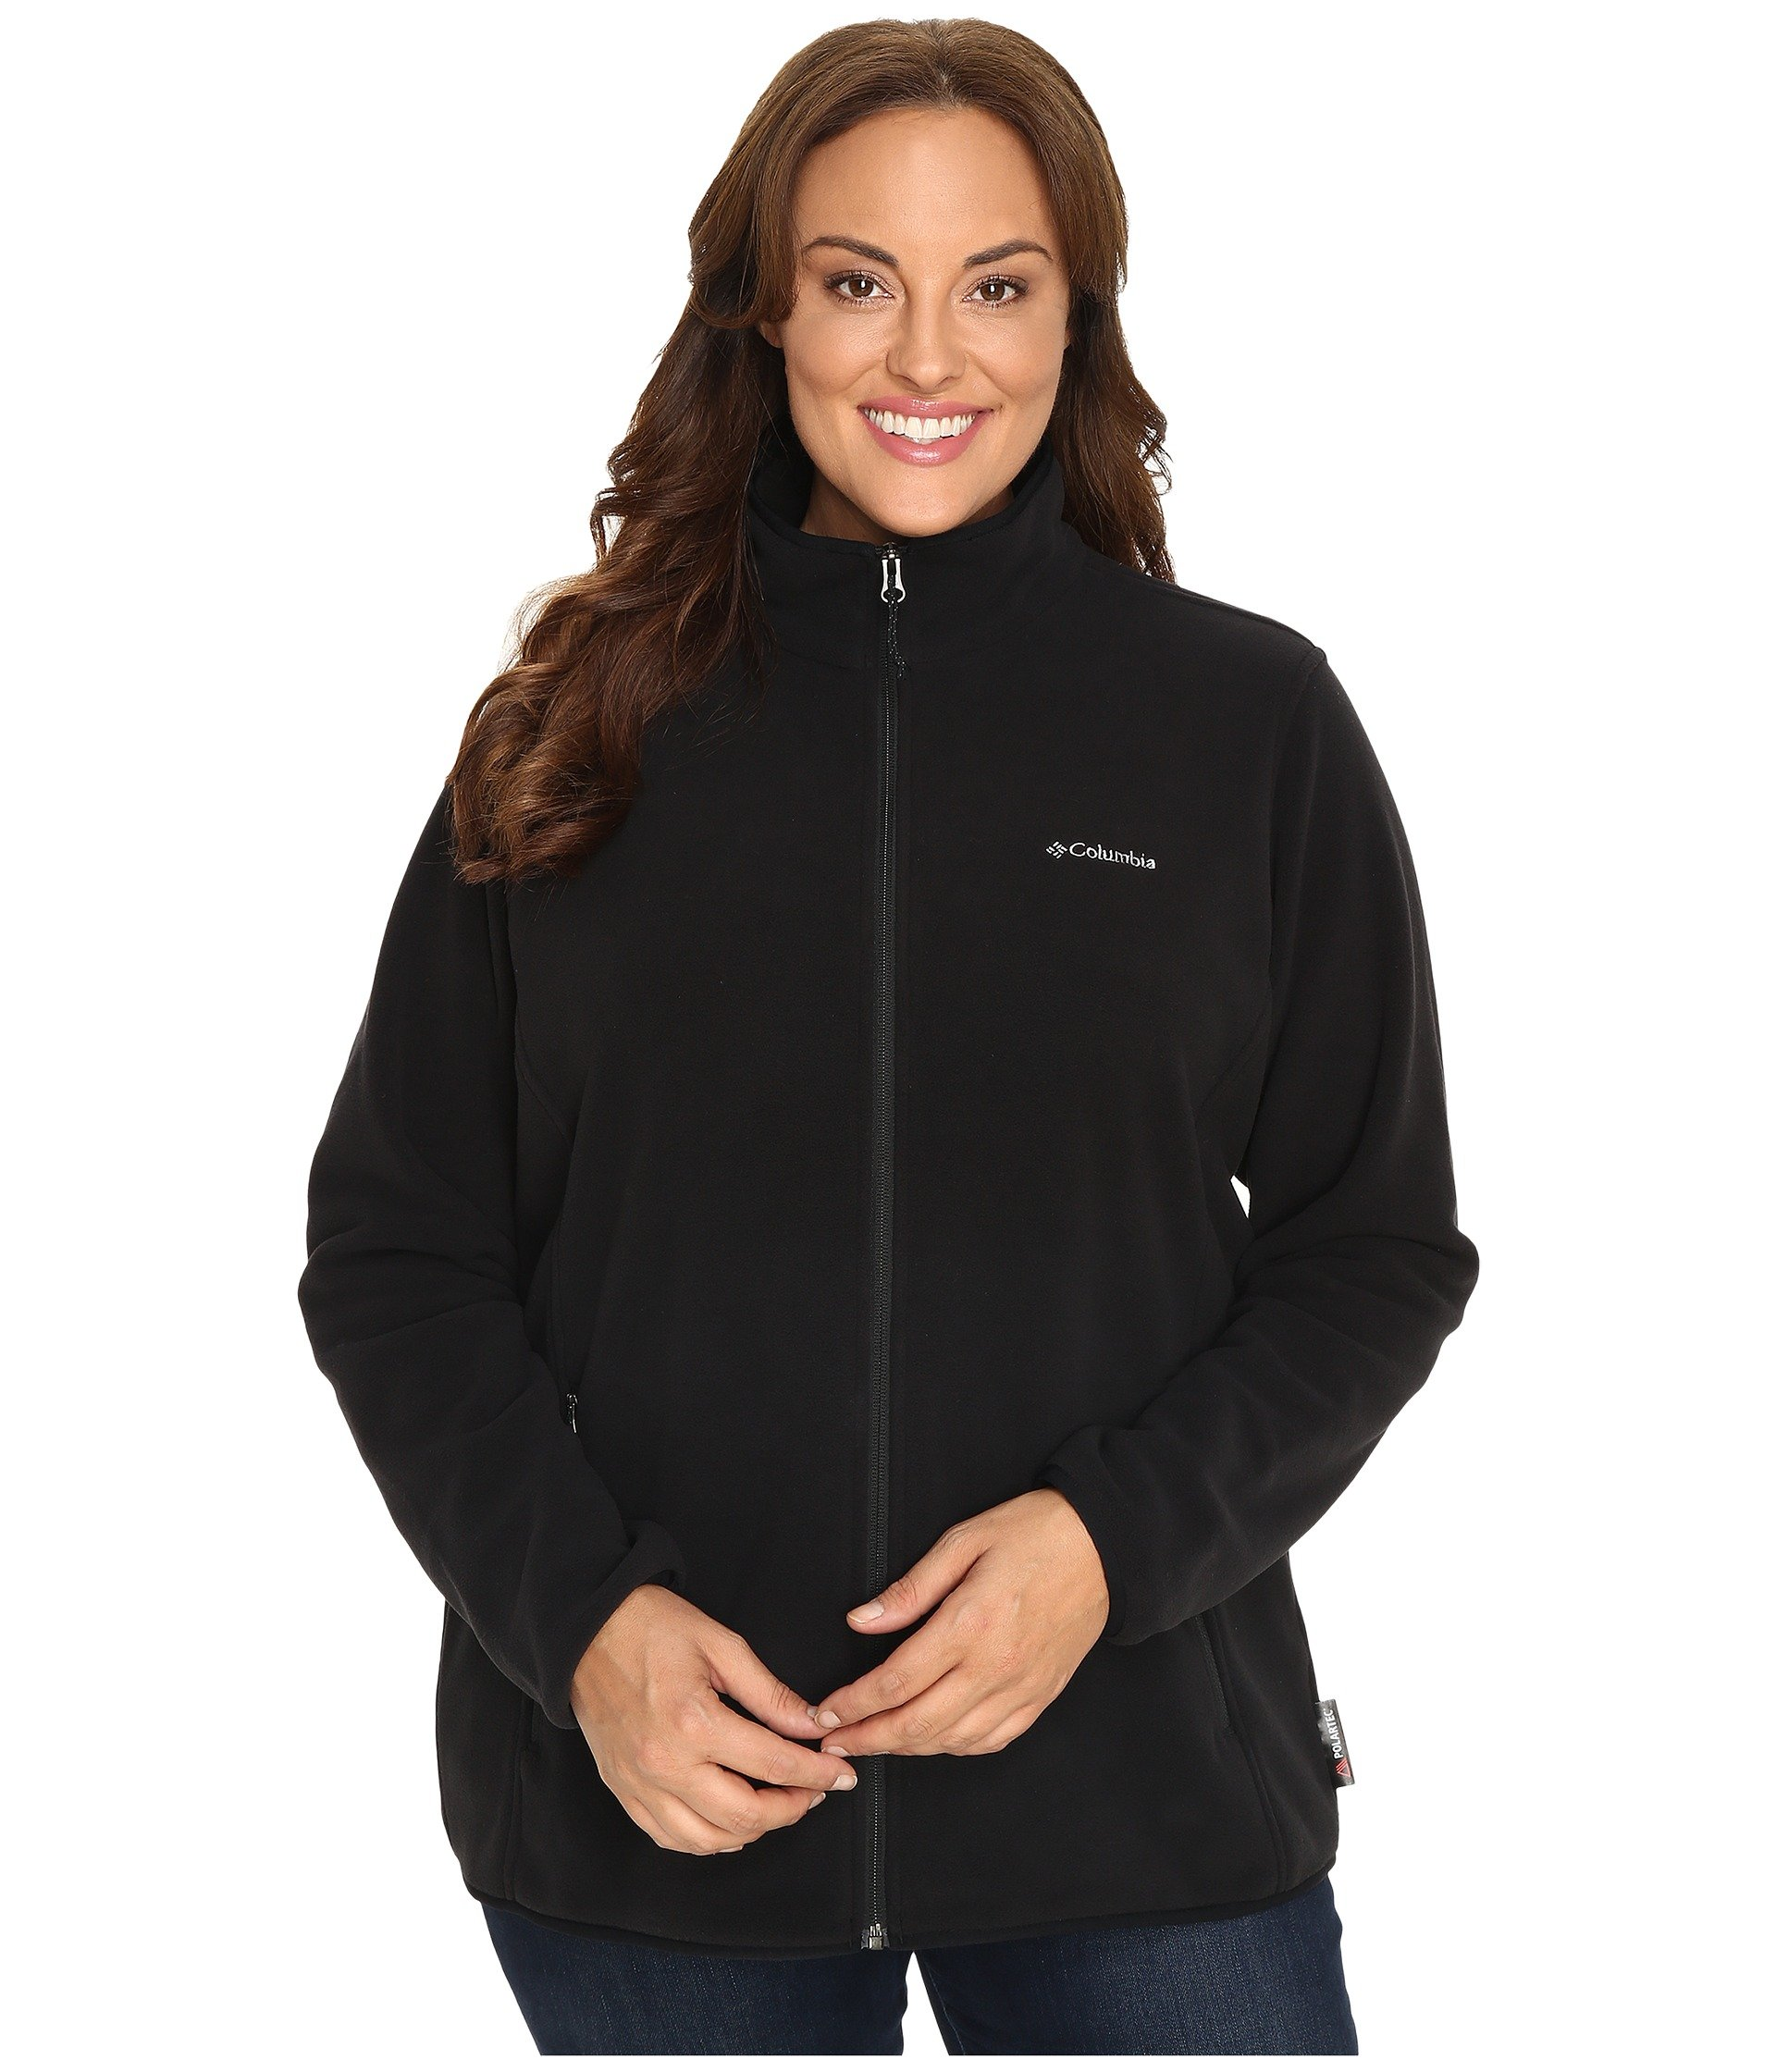 Clothing women plus size athletic shipped free at zappos columbia plus size fuller ridge fleece jacket sciox Images